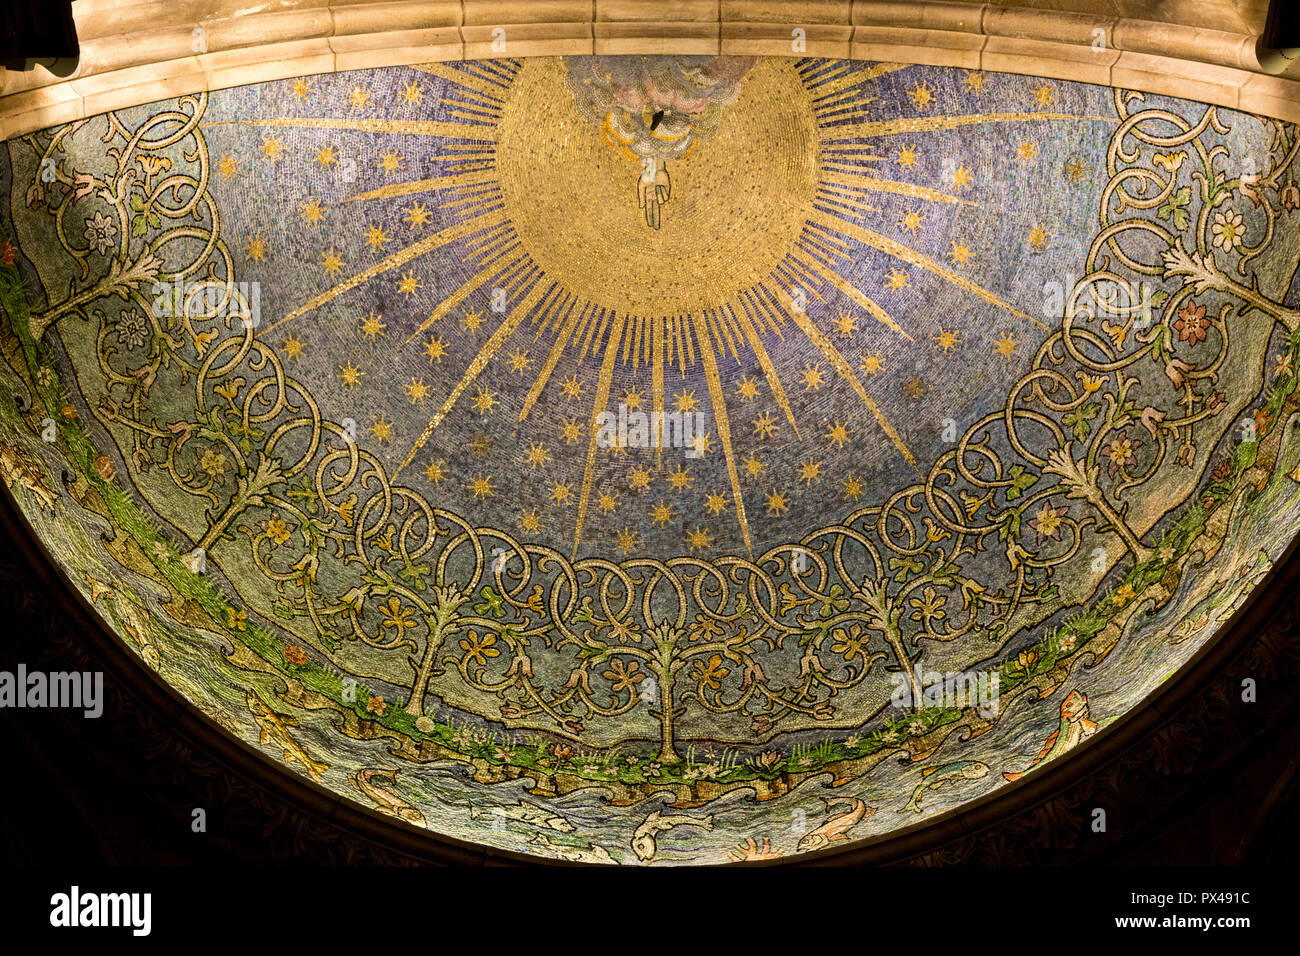 St Ann's Belfast protestant cathedral, Northern Ireland. Baptistery ceiling mosaic. Hand of god. Ulster, U.K. - Stock Image